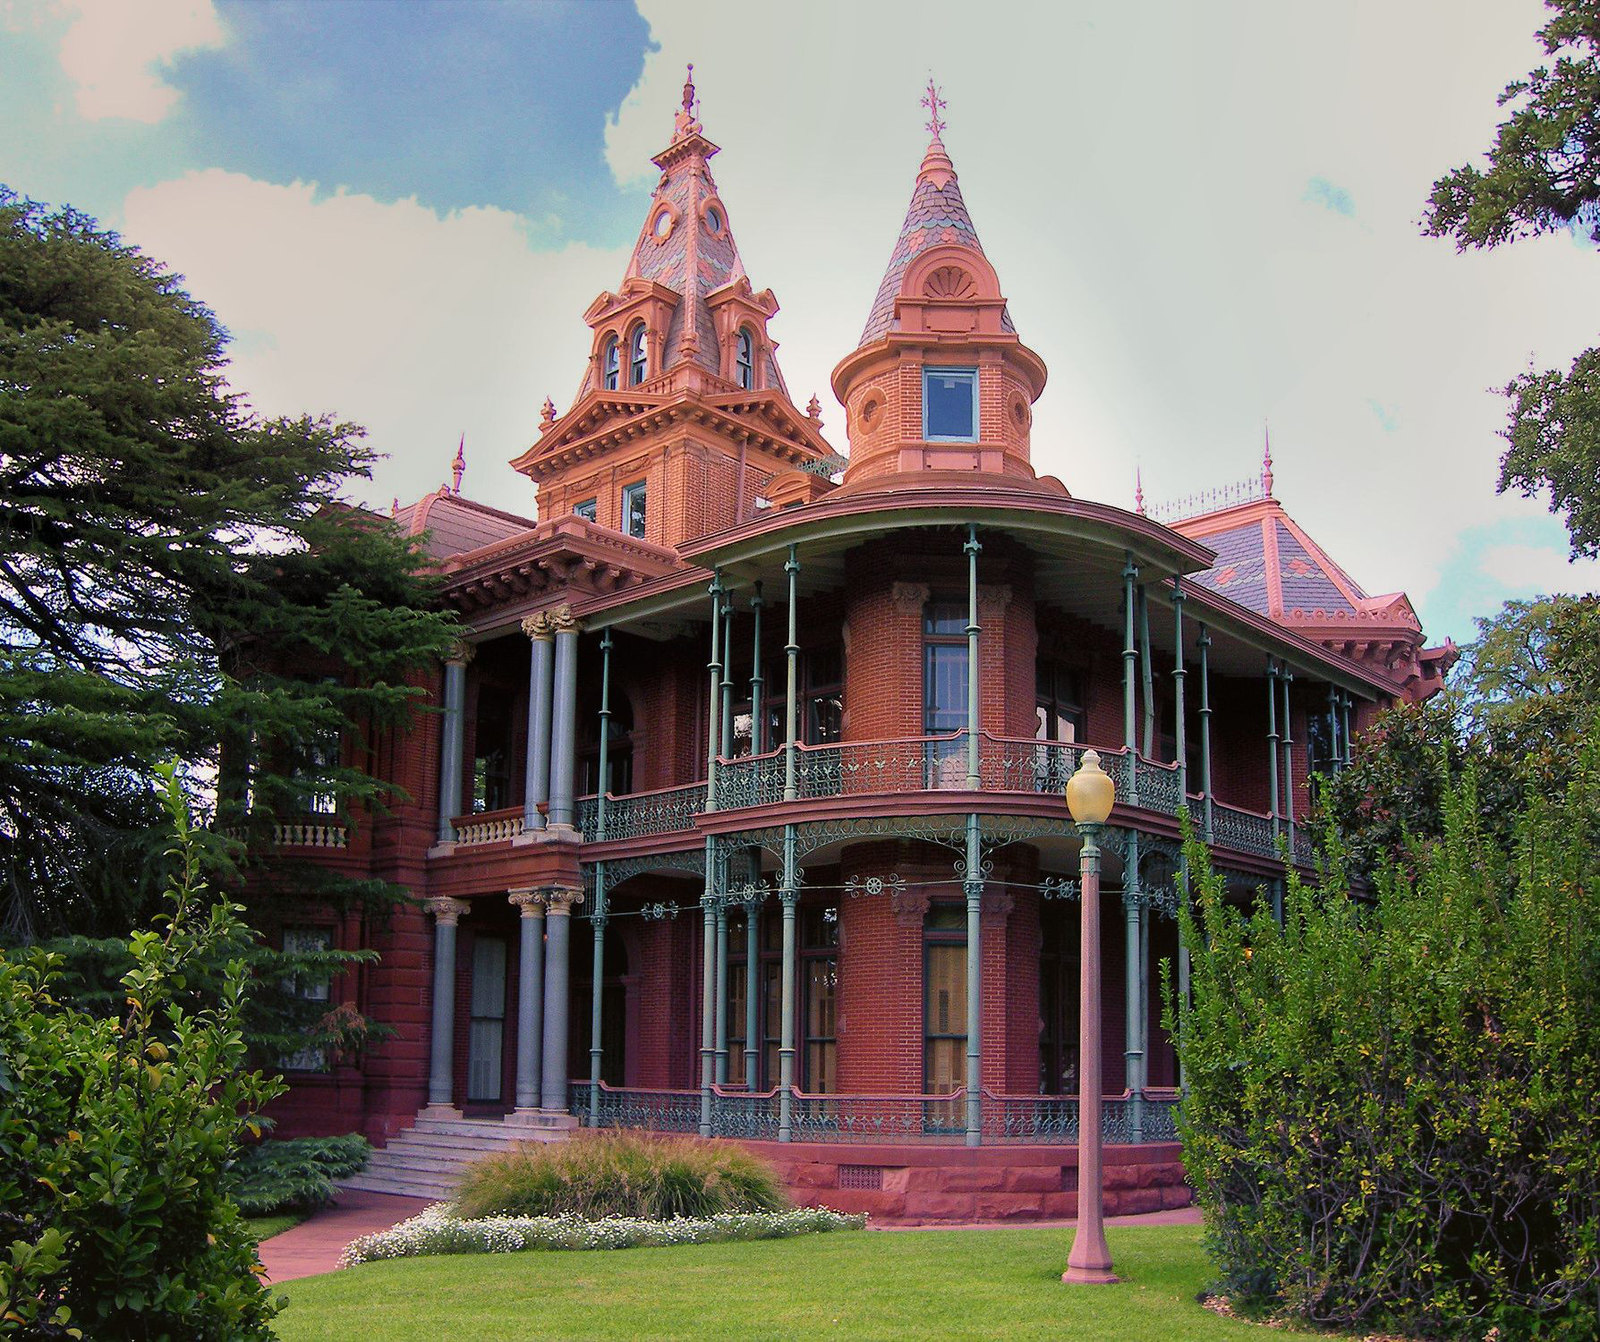 Littlefield House, Austin, Texas. Credit Larry D. Moore